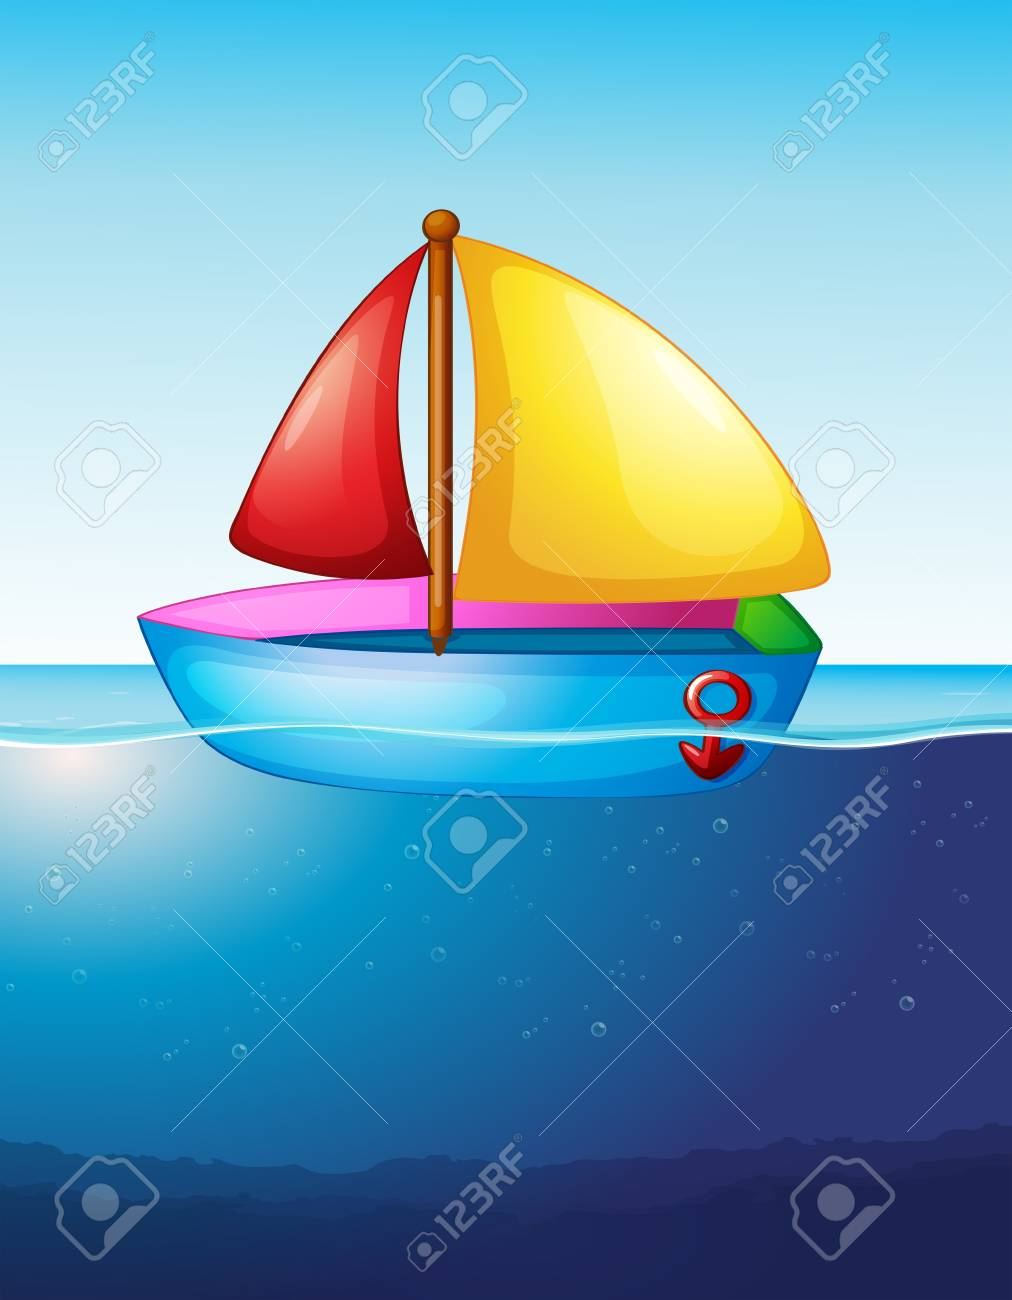 Toy boat floating on water illustration.